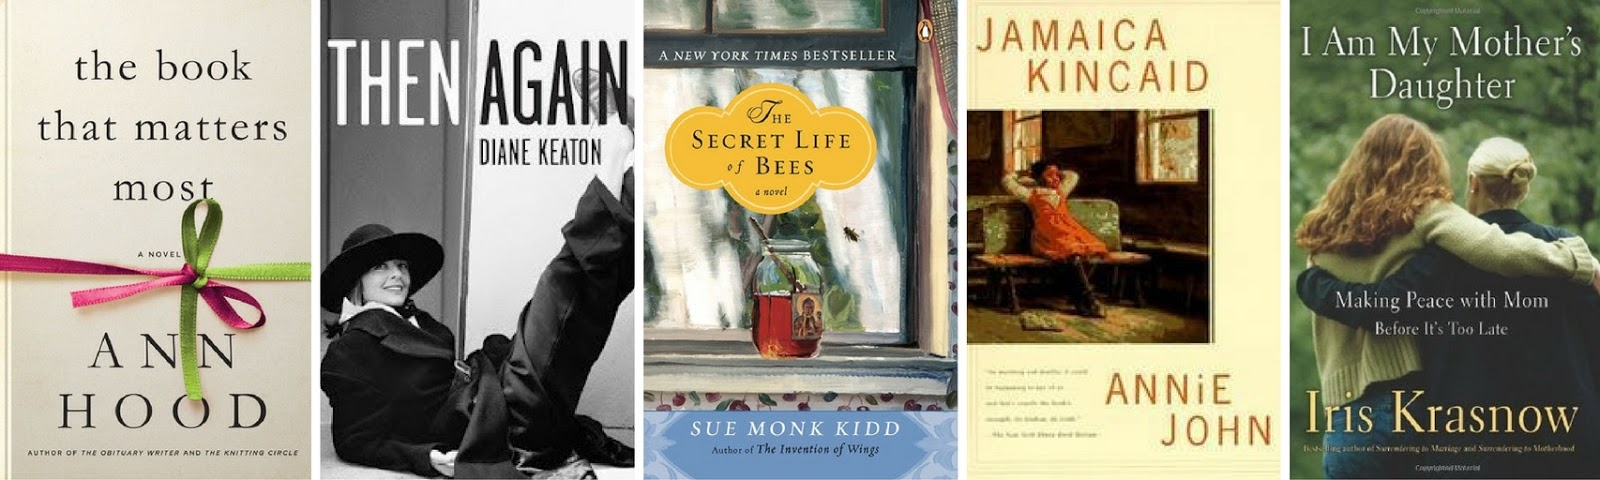 an overview of annie john by jamaica kincaid Episodes from the young life of annie john, aged 10 to 17, as she grows up on the caribbean island of antigua this is a magical coming-of-age tale, ripe with.